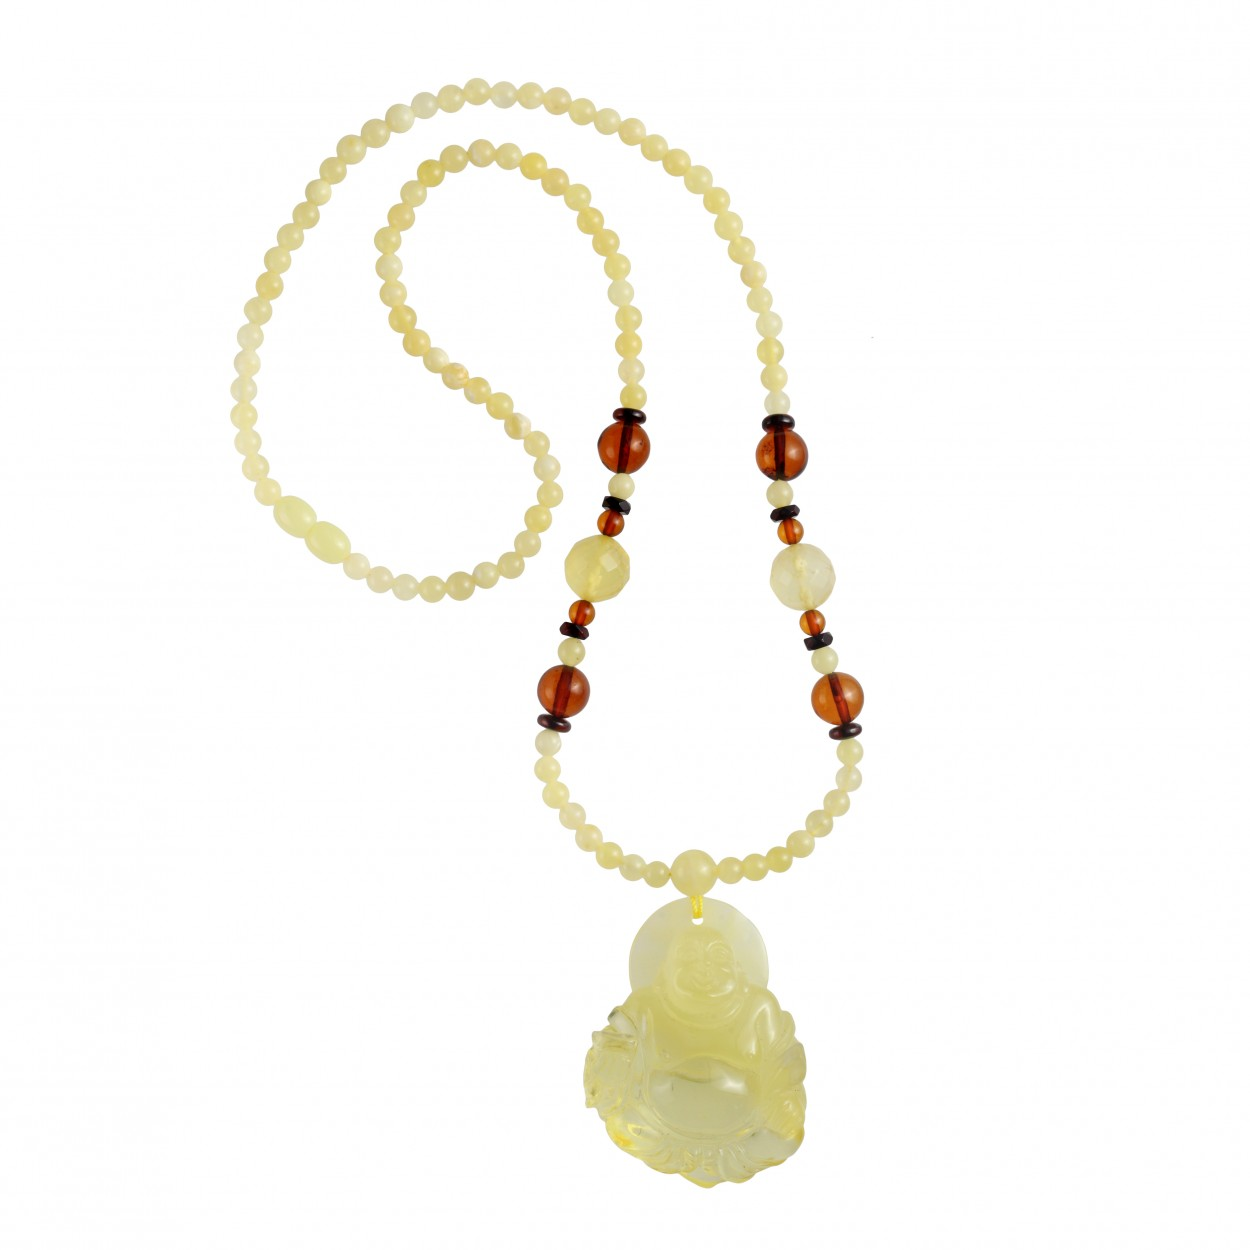 Amber Necklace Sunrising Buddha